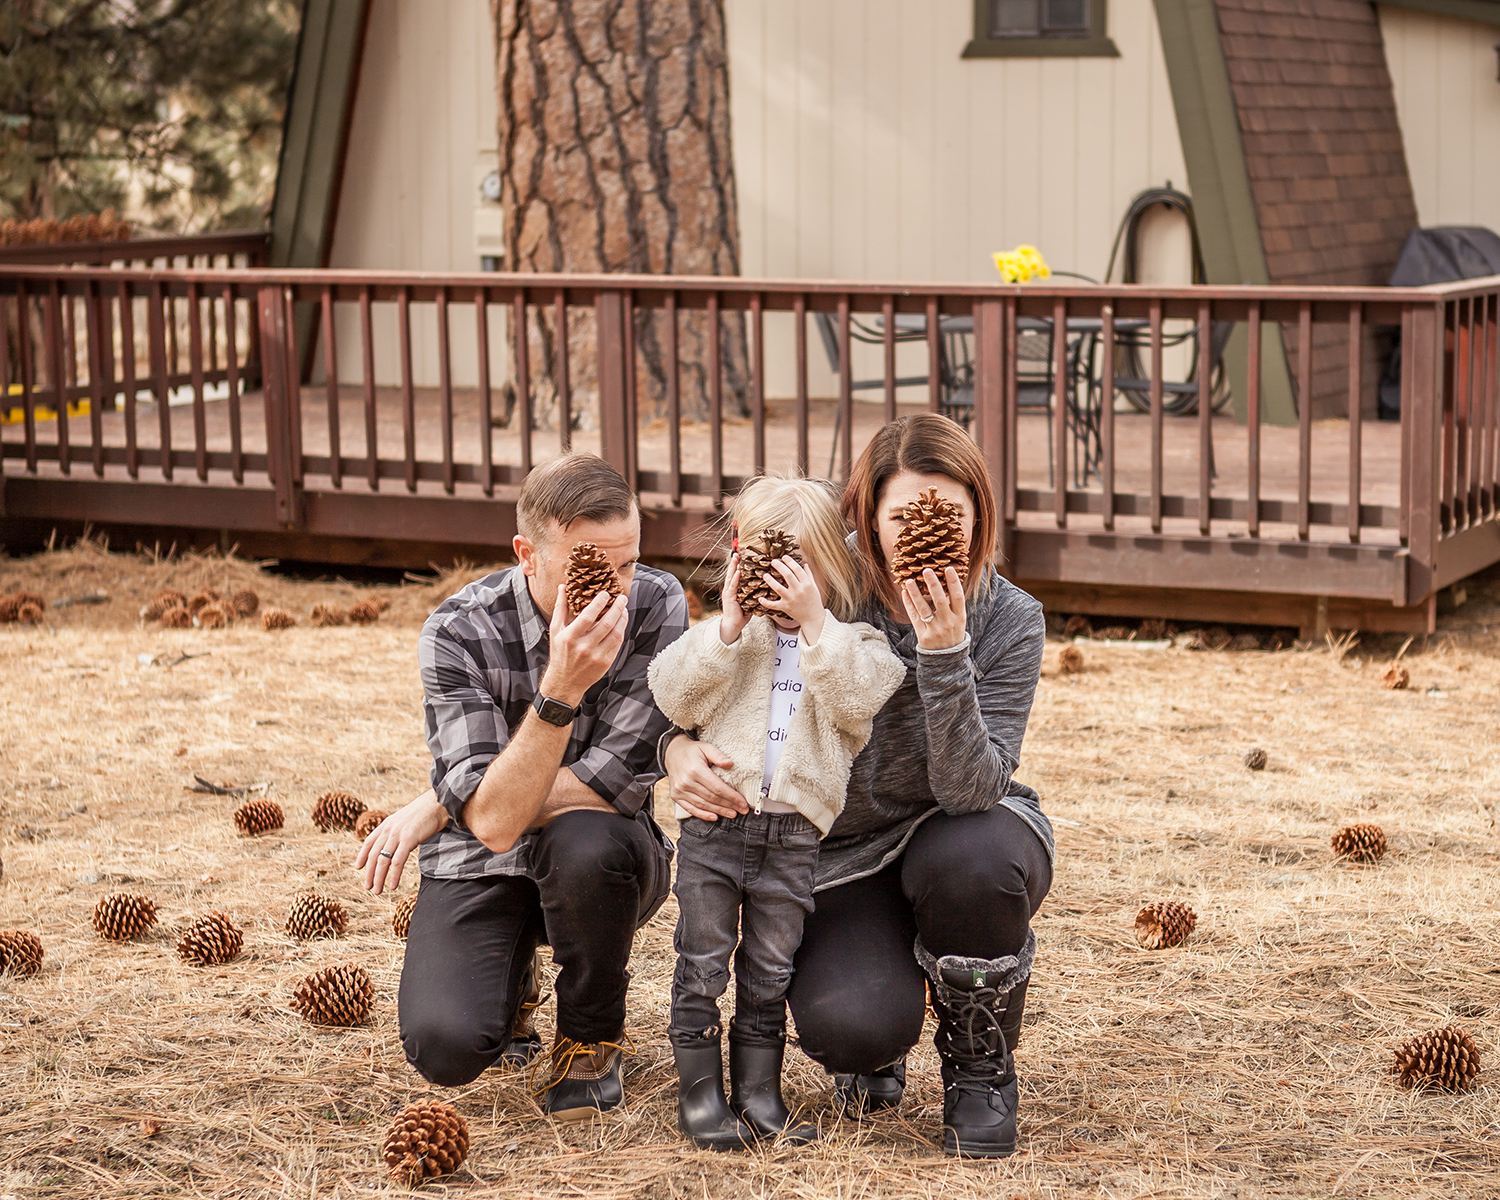 Need a family vacation? See why you need to take the family to Big Bear ASAP!